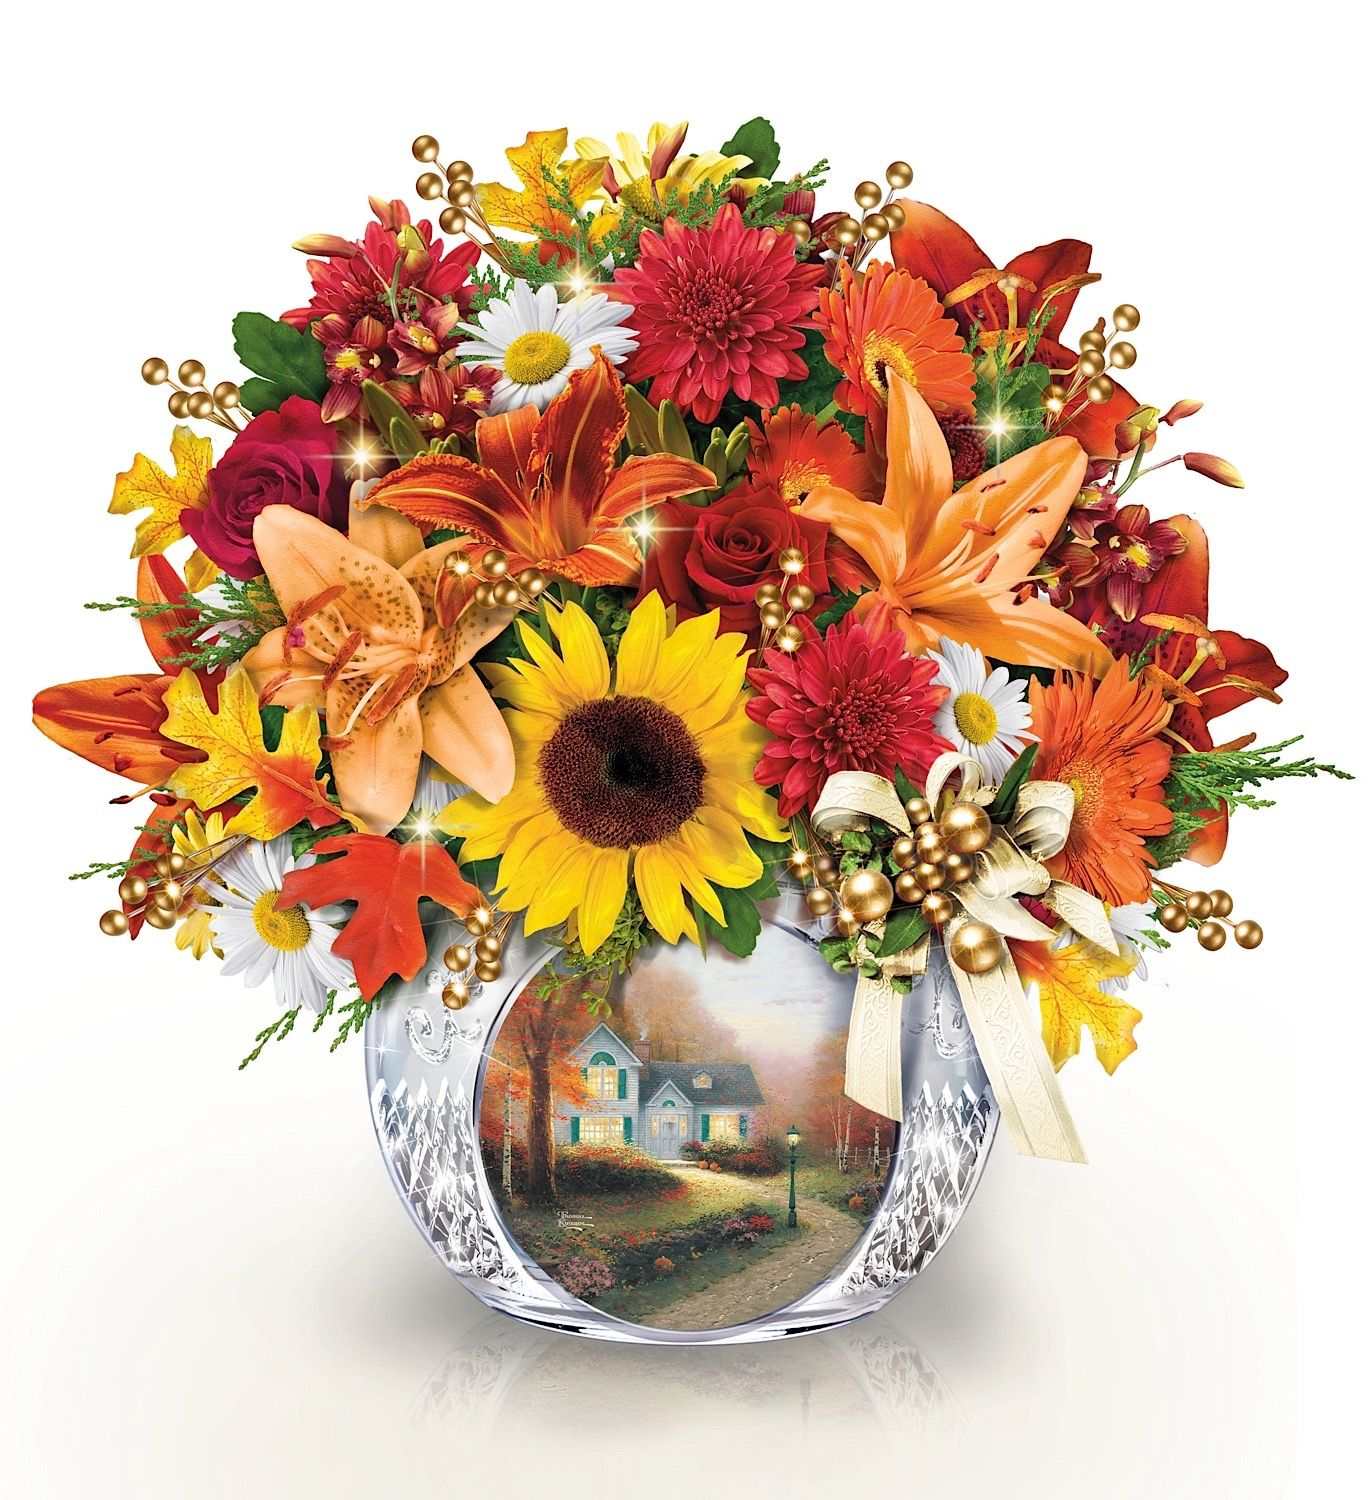 """Enjoy brilliant fall colors with this faux floral arrangement from the Bradford Exchange featuring Thom's """"Blessings of Autumn"""" on the crystal vase."""